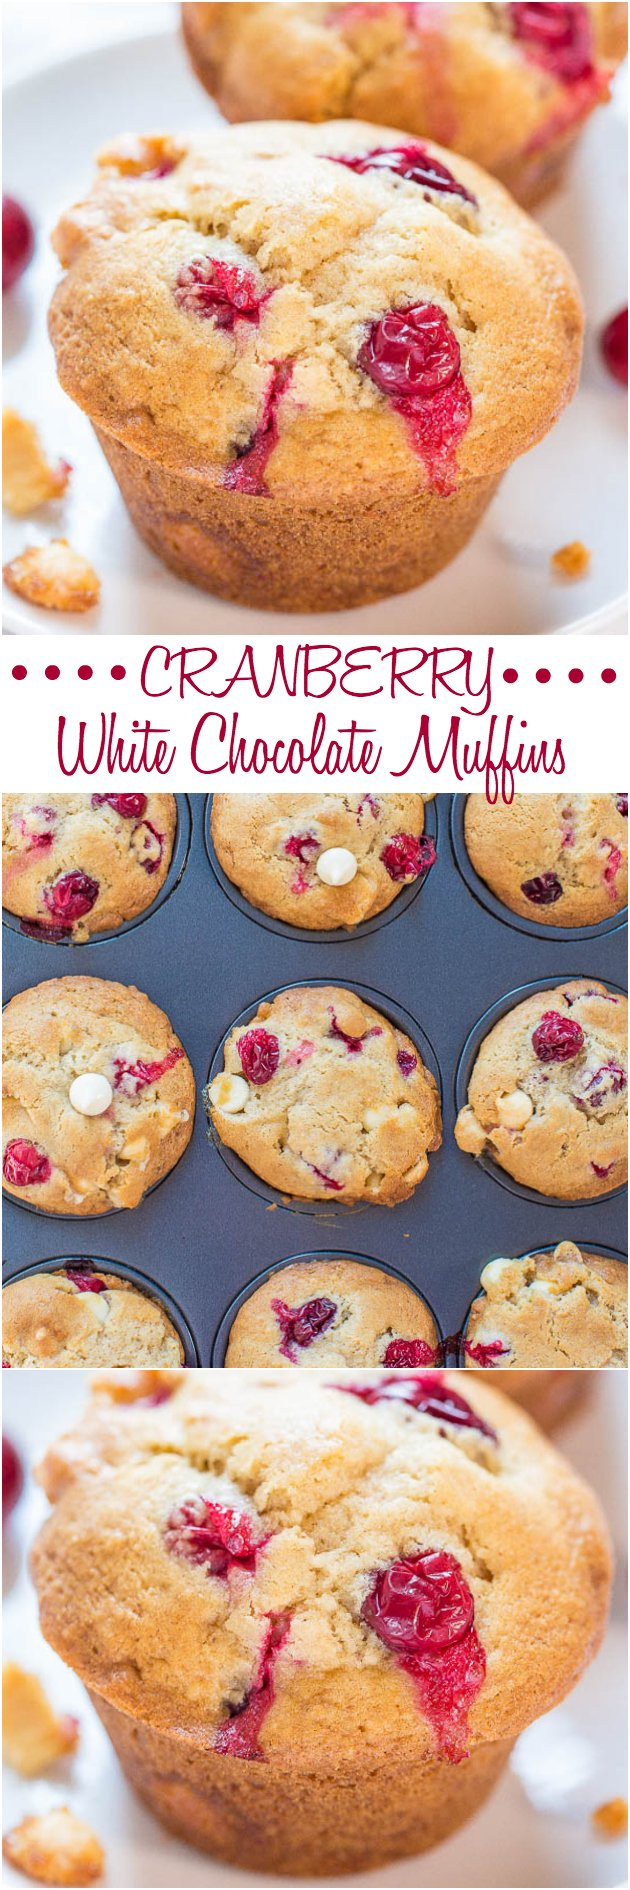 Cranberry White Chocolate Muffins - Soft, fluffy, and bursting with berries in every bite! Perfect way to use your fresh cranberries!!